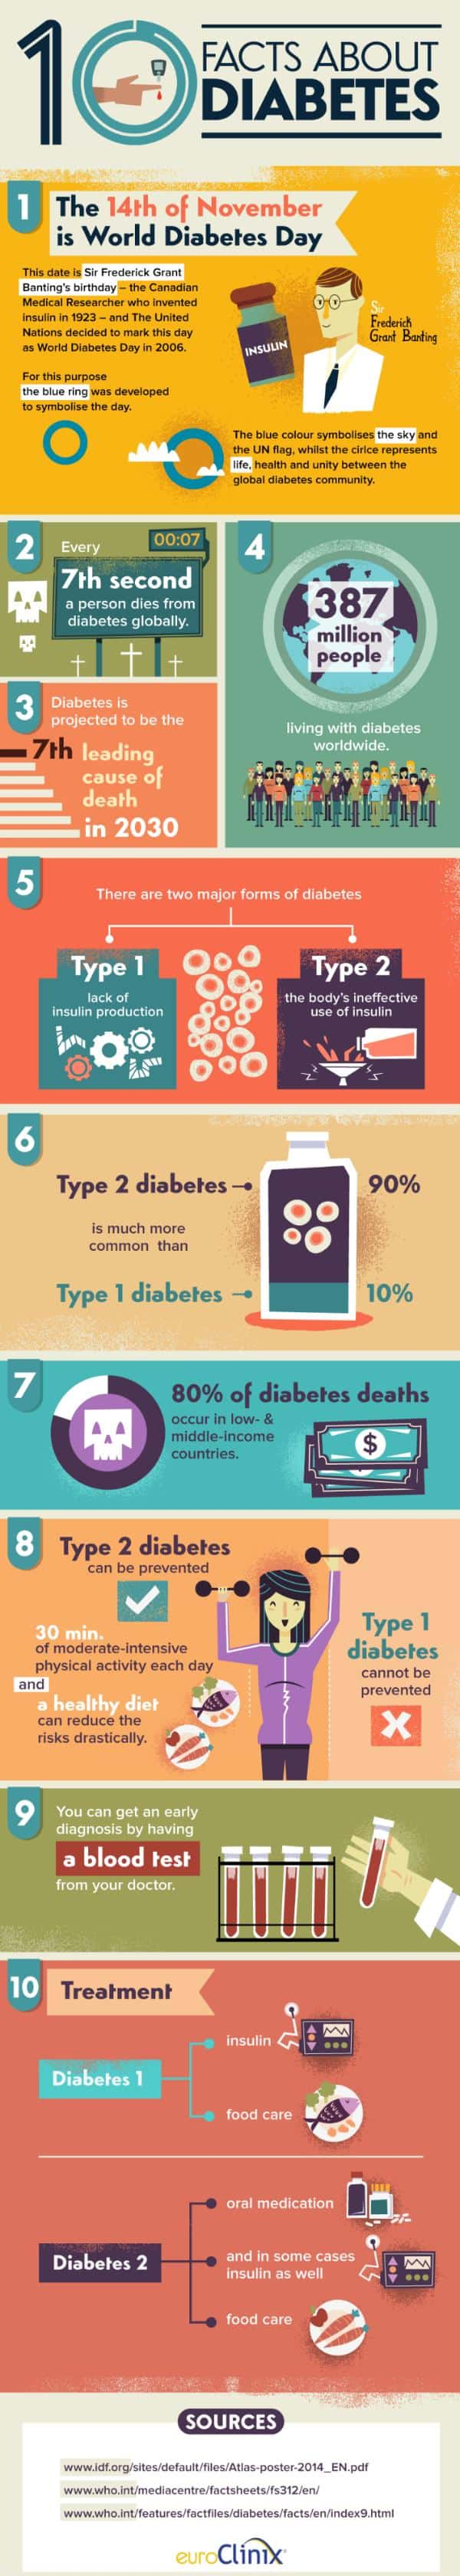 10 Facts About Diabetes Infographic